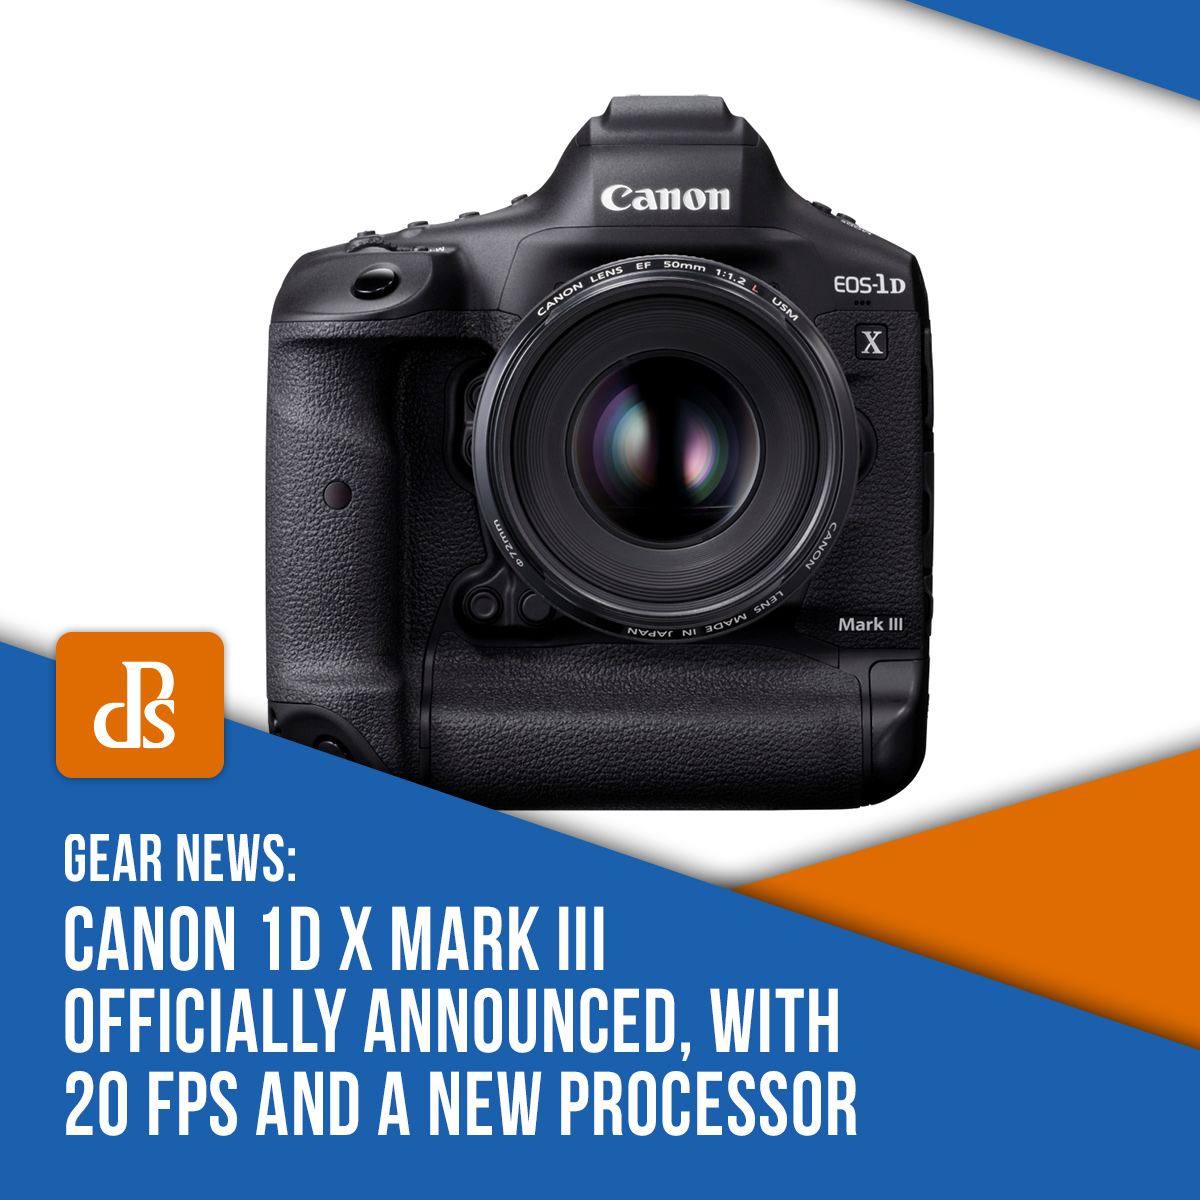 dps-canon-1dx-mark-iii-announced